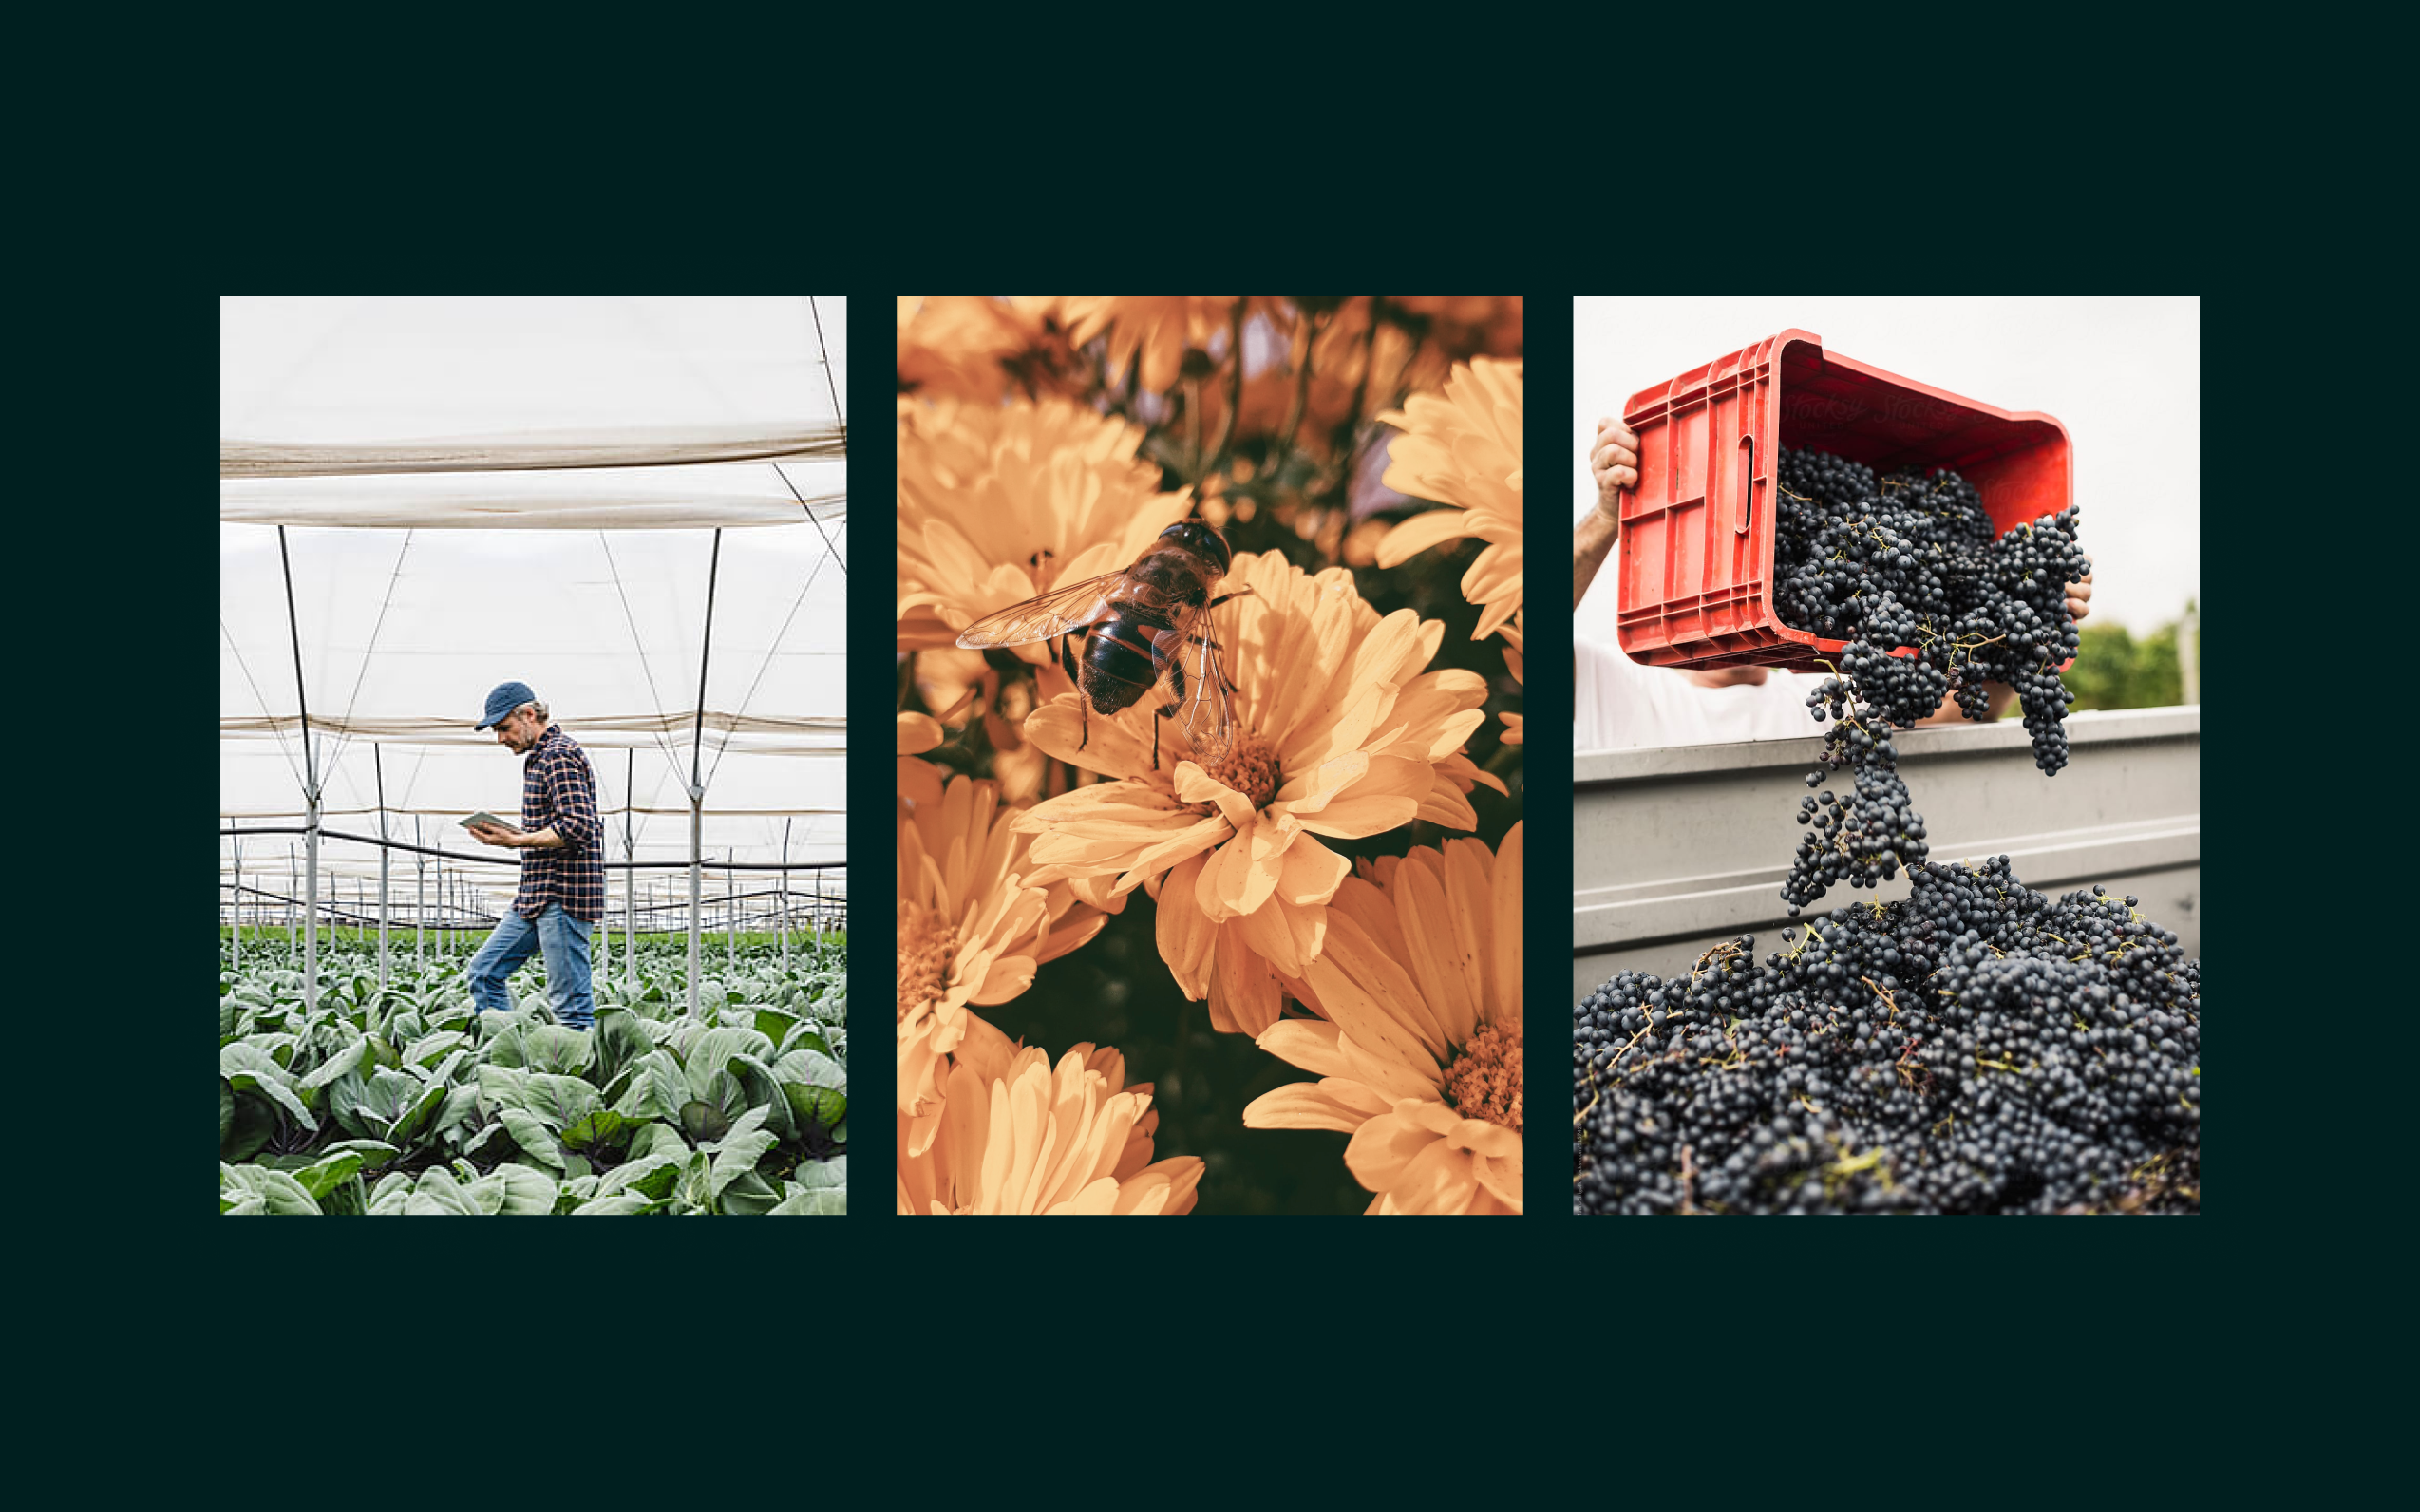 Three images showing a man in a greenhouse, a bee on a yellow flower and fresh plums